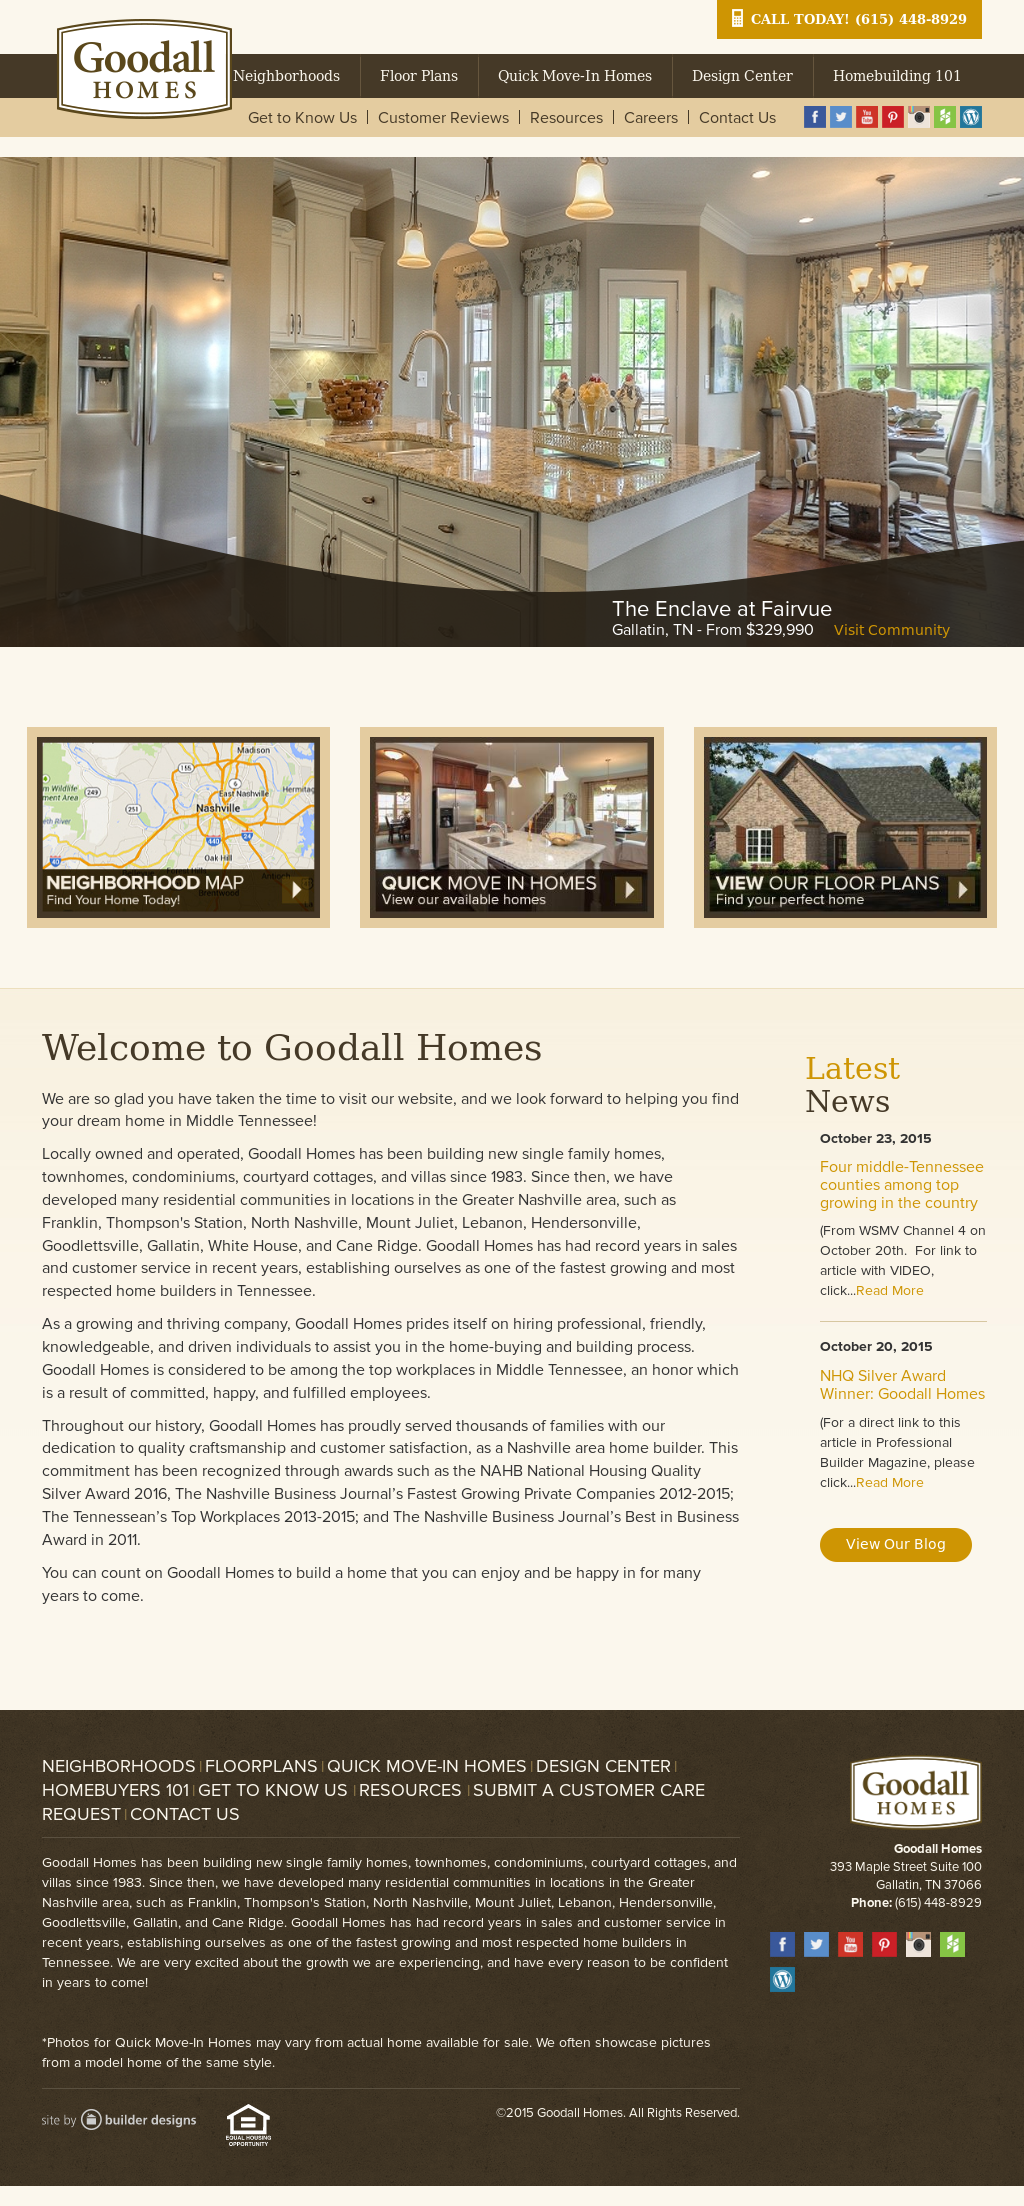 Goodall Homes Competitors, Revenue and Employees - Owler Company Profile